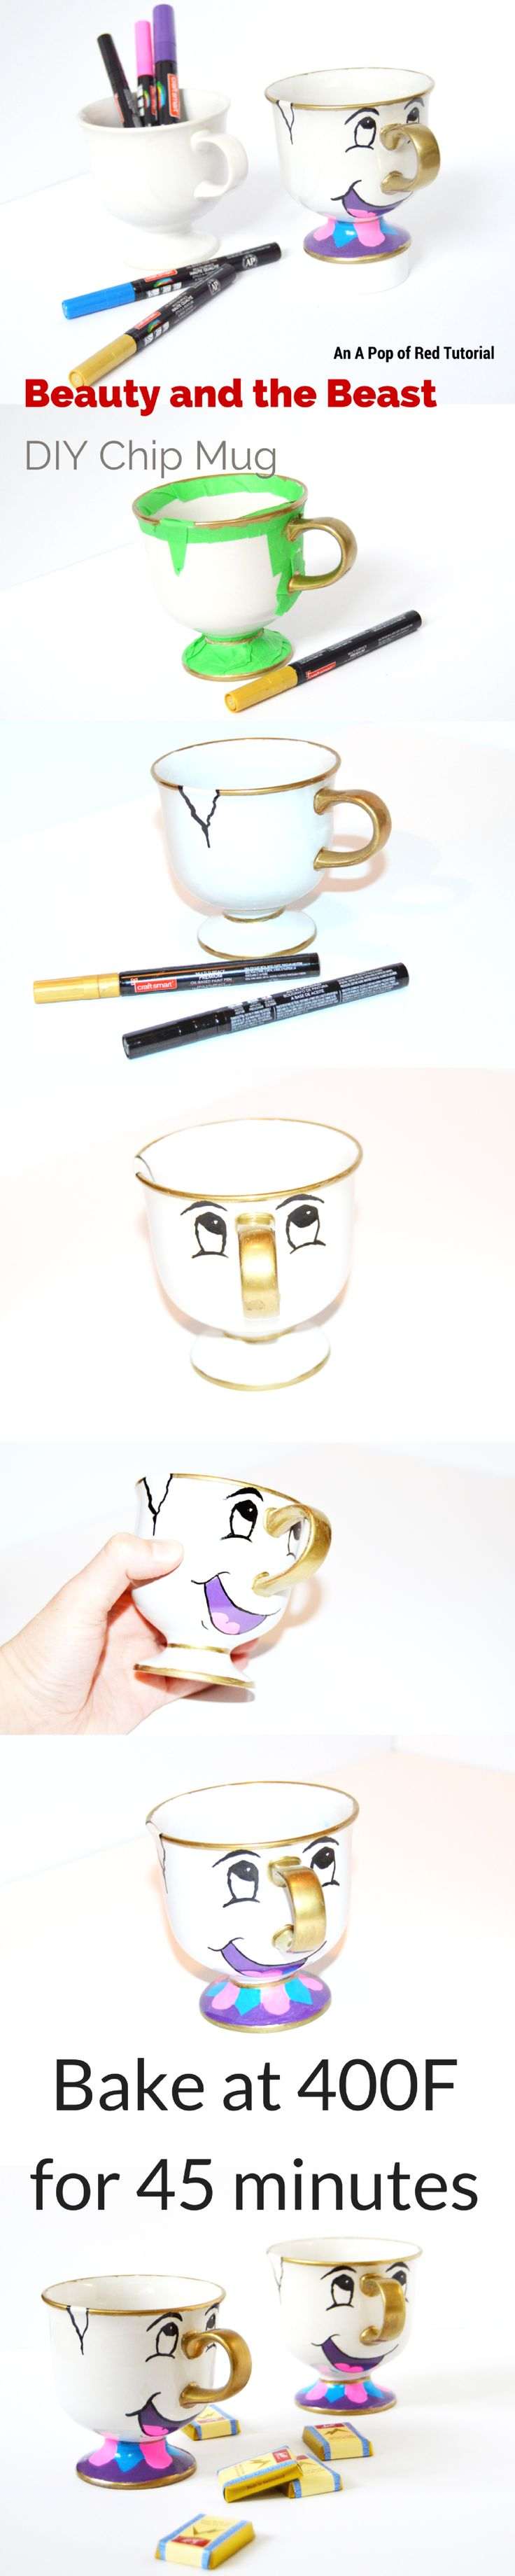 DIY Beauty and the Beast Mug | A Sharpie craft or oil-based paint pen project(Diy Art Paintings)